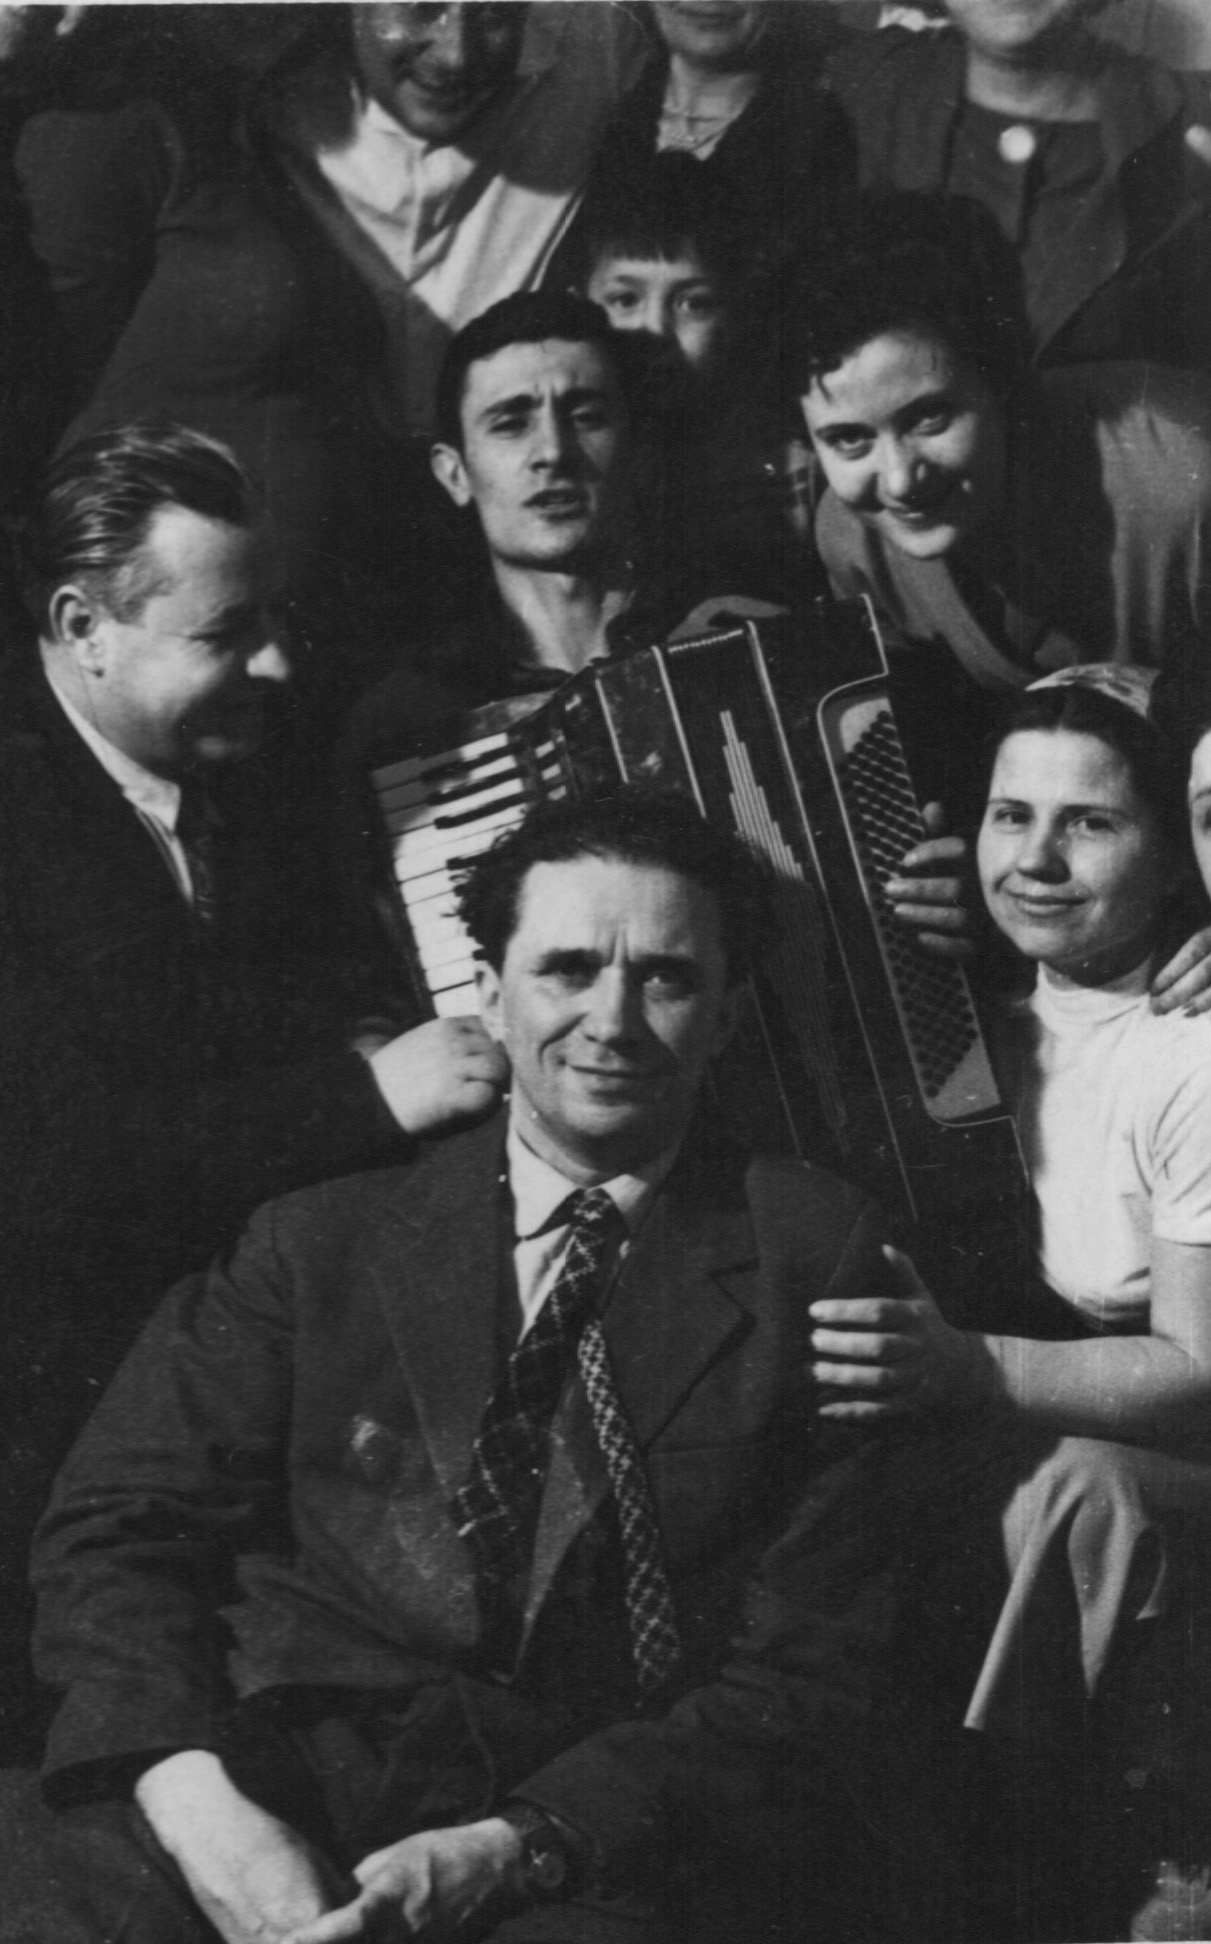 Nicolai Costenco with a group of Moldavian writers, 1960s